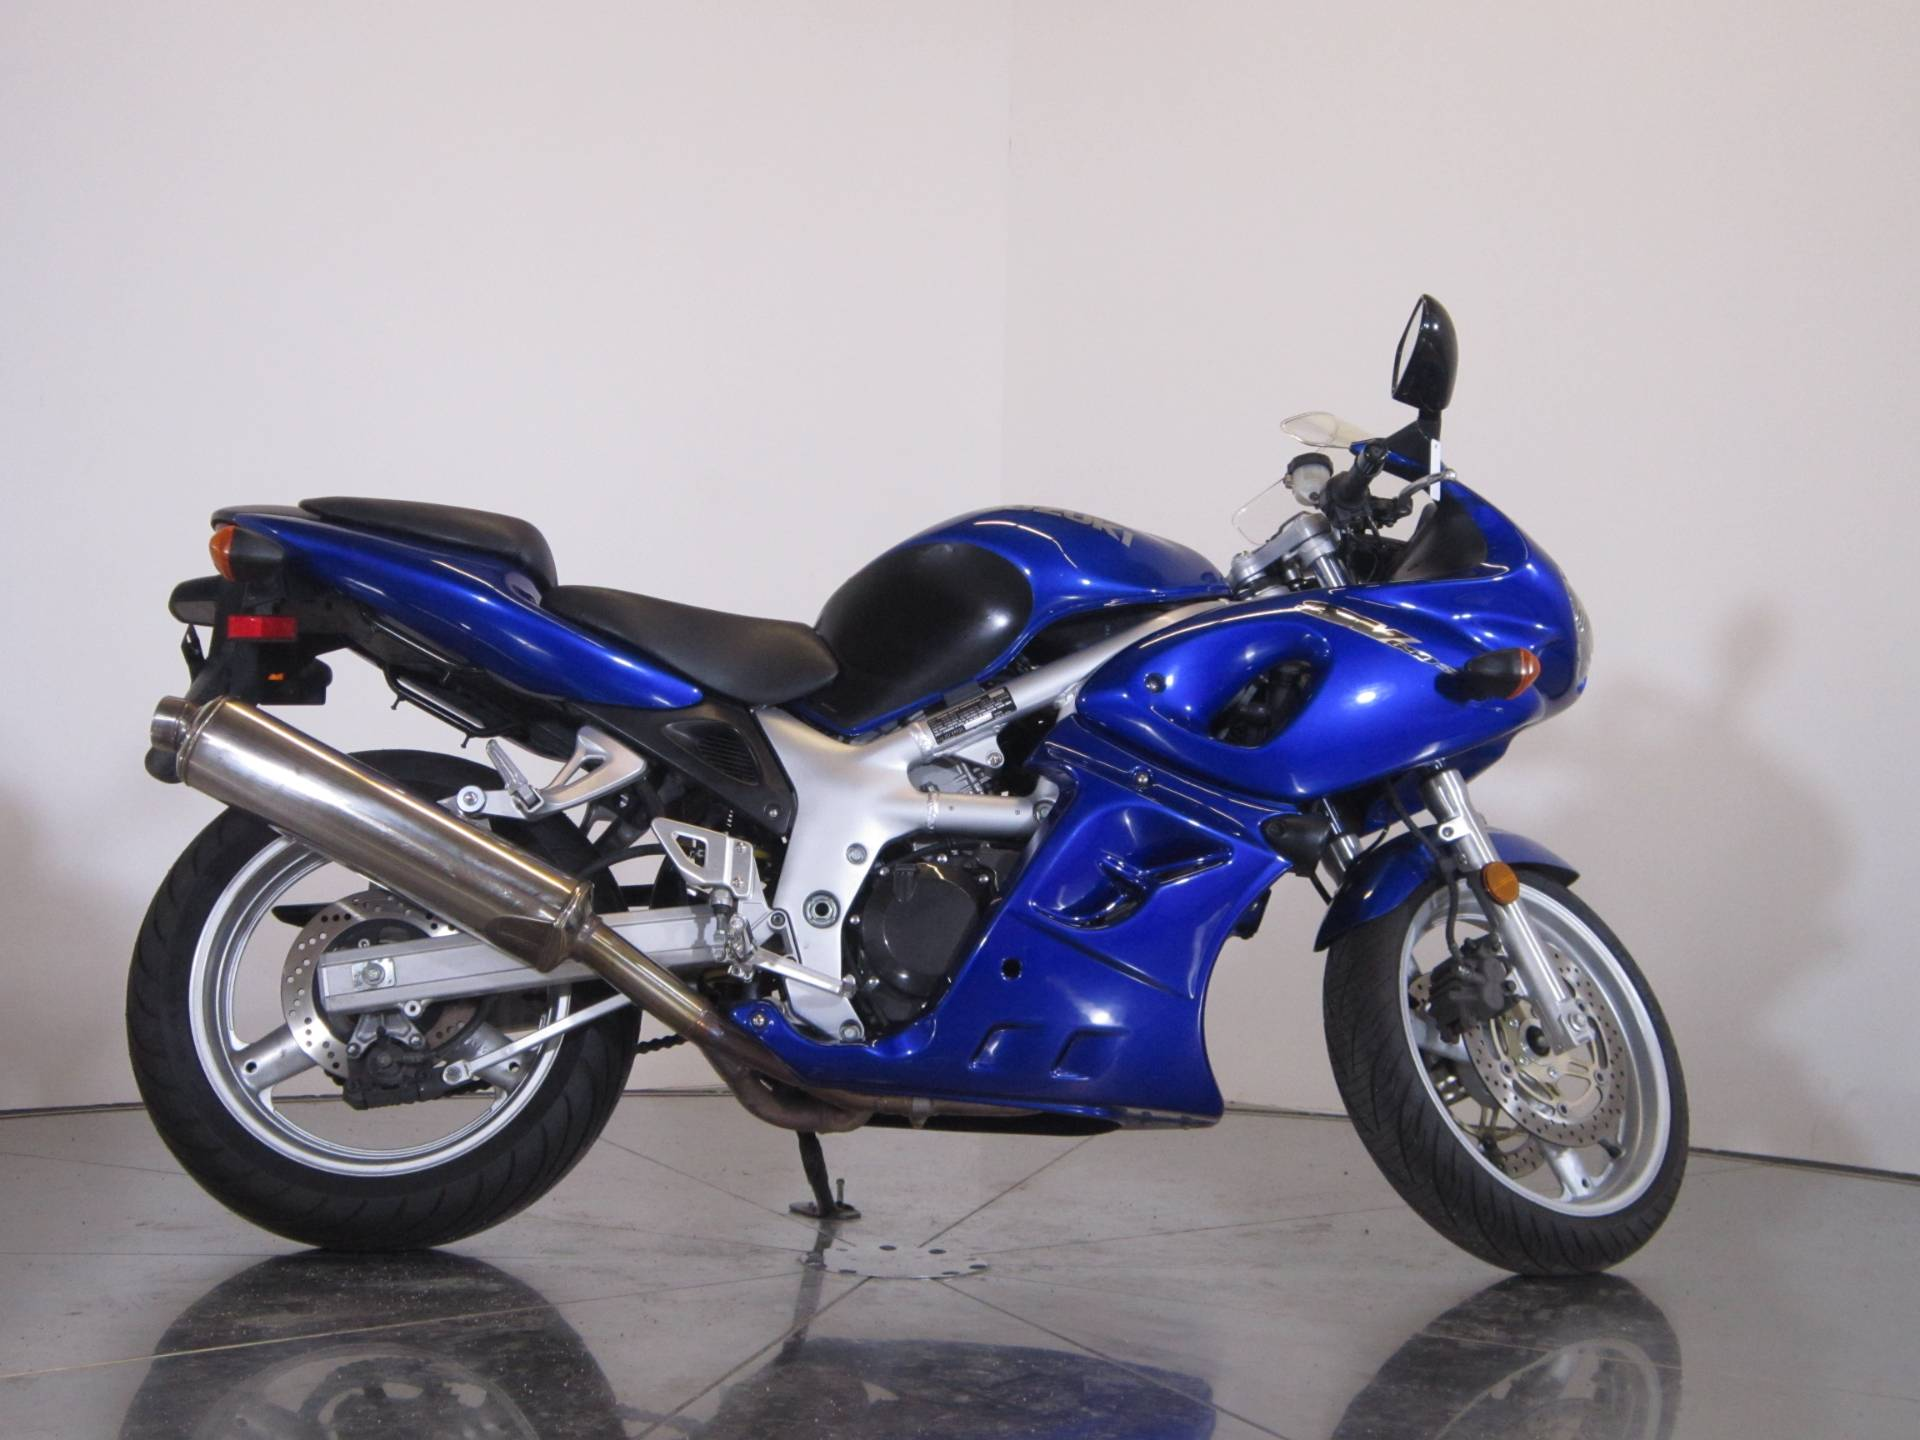 2001 Suzuki SV650 for sale 109029